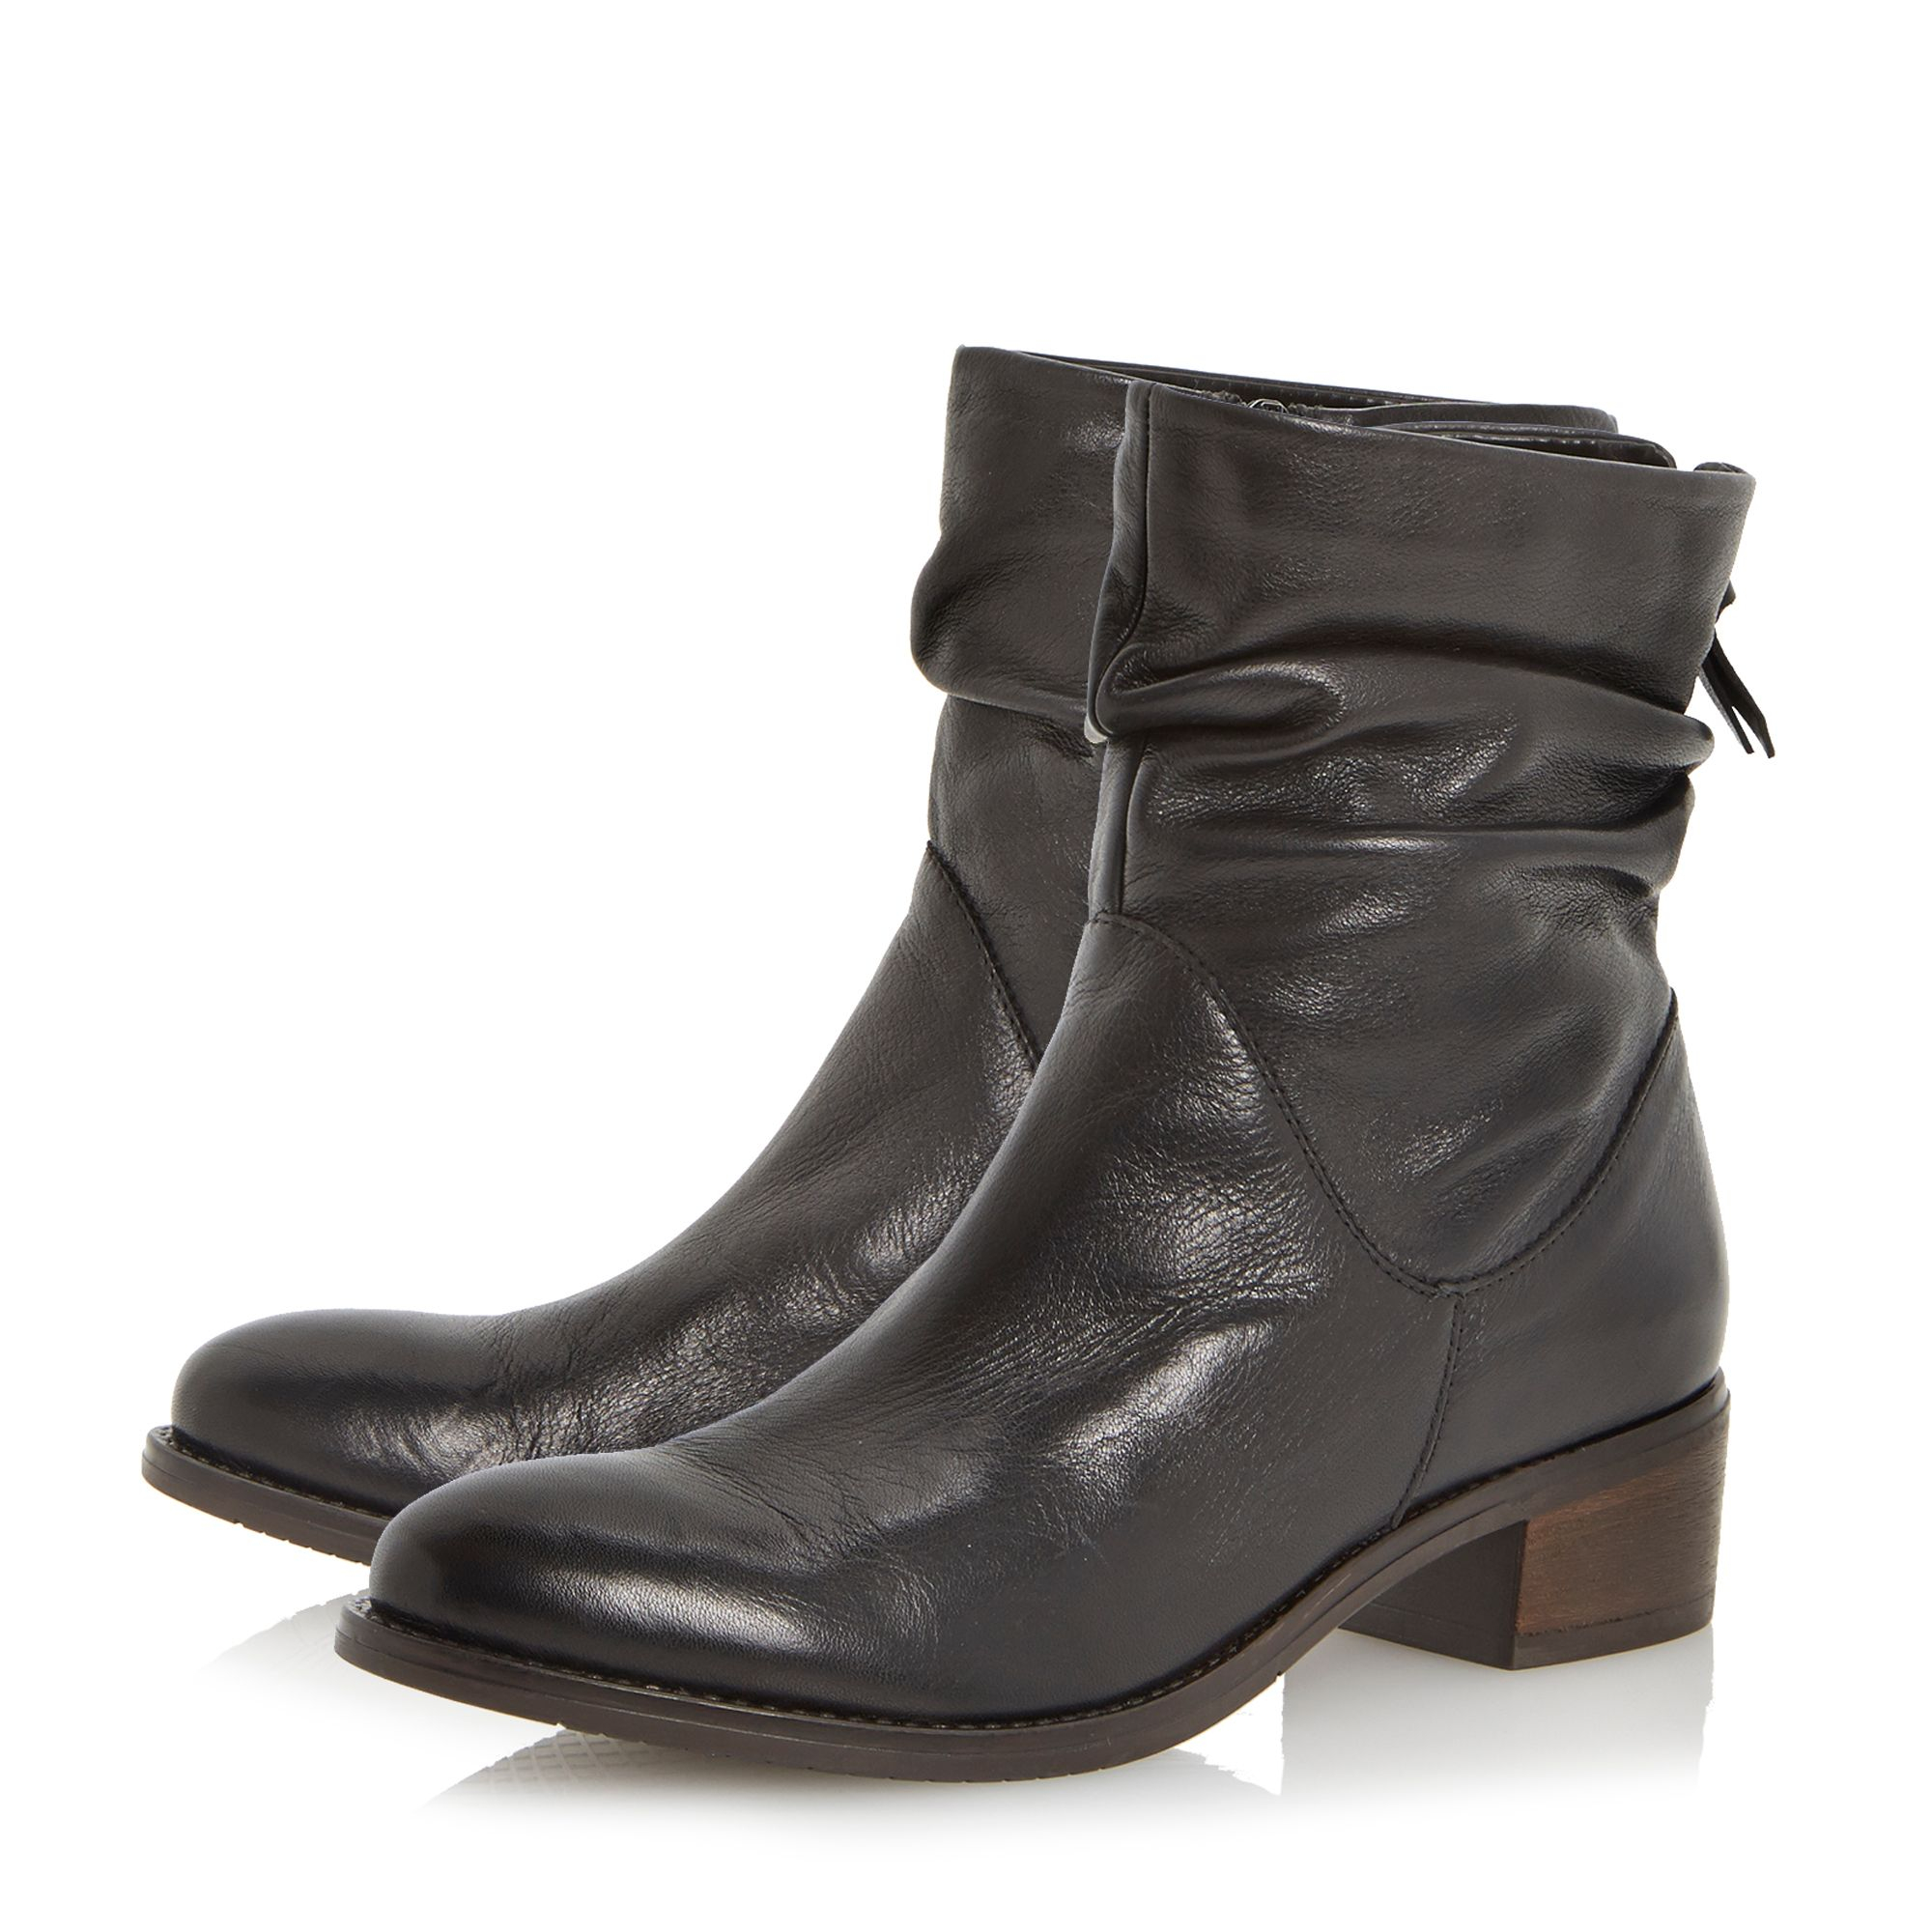 Dune Pager Slouch Leather Ankle Boot in Black   Lyst